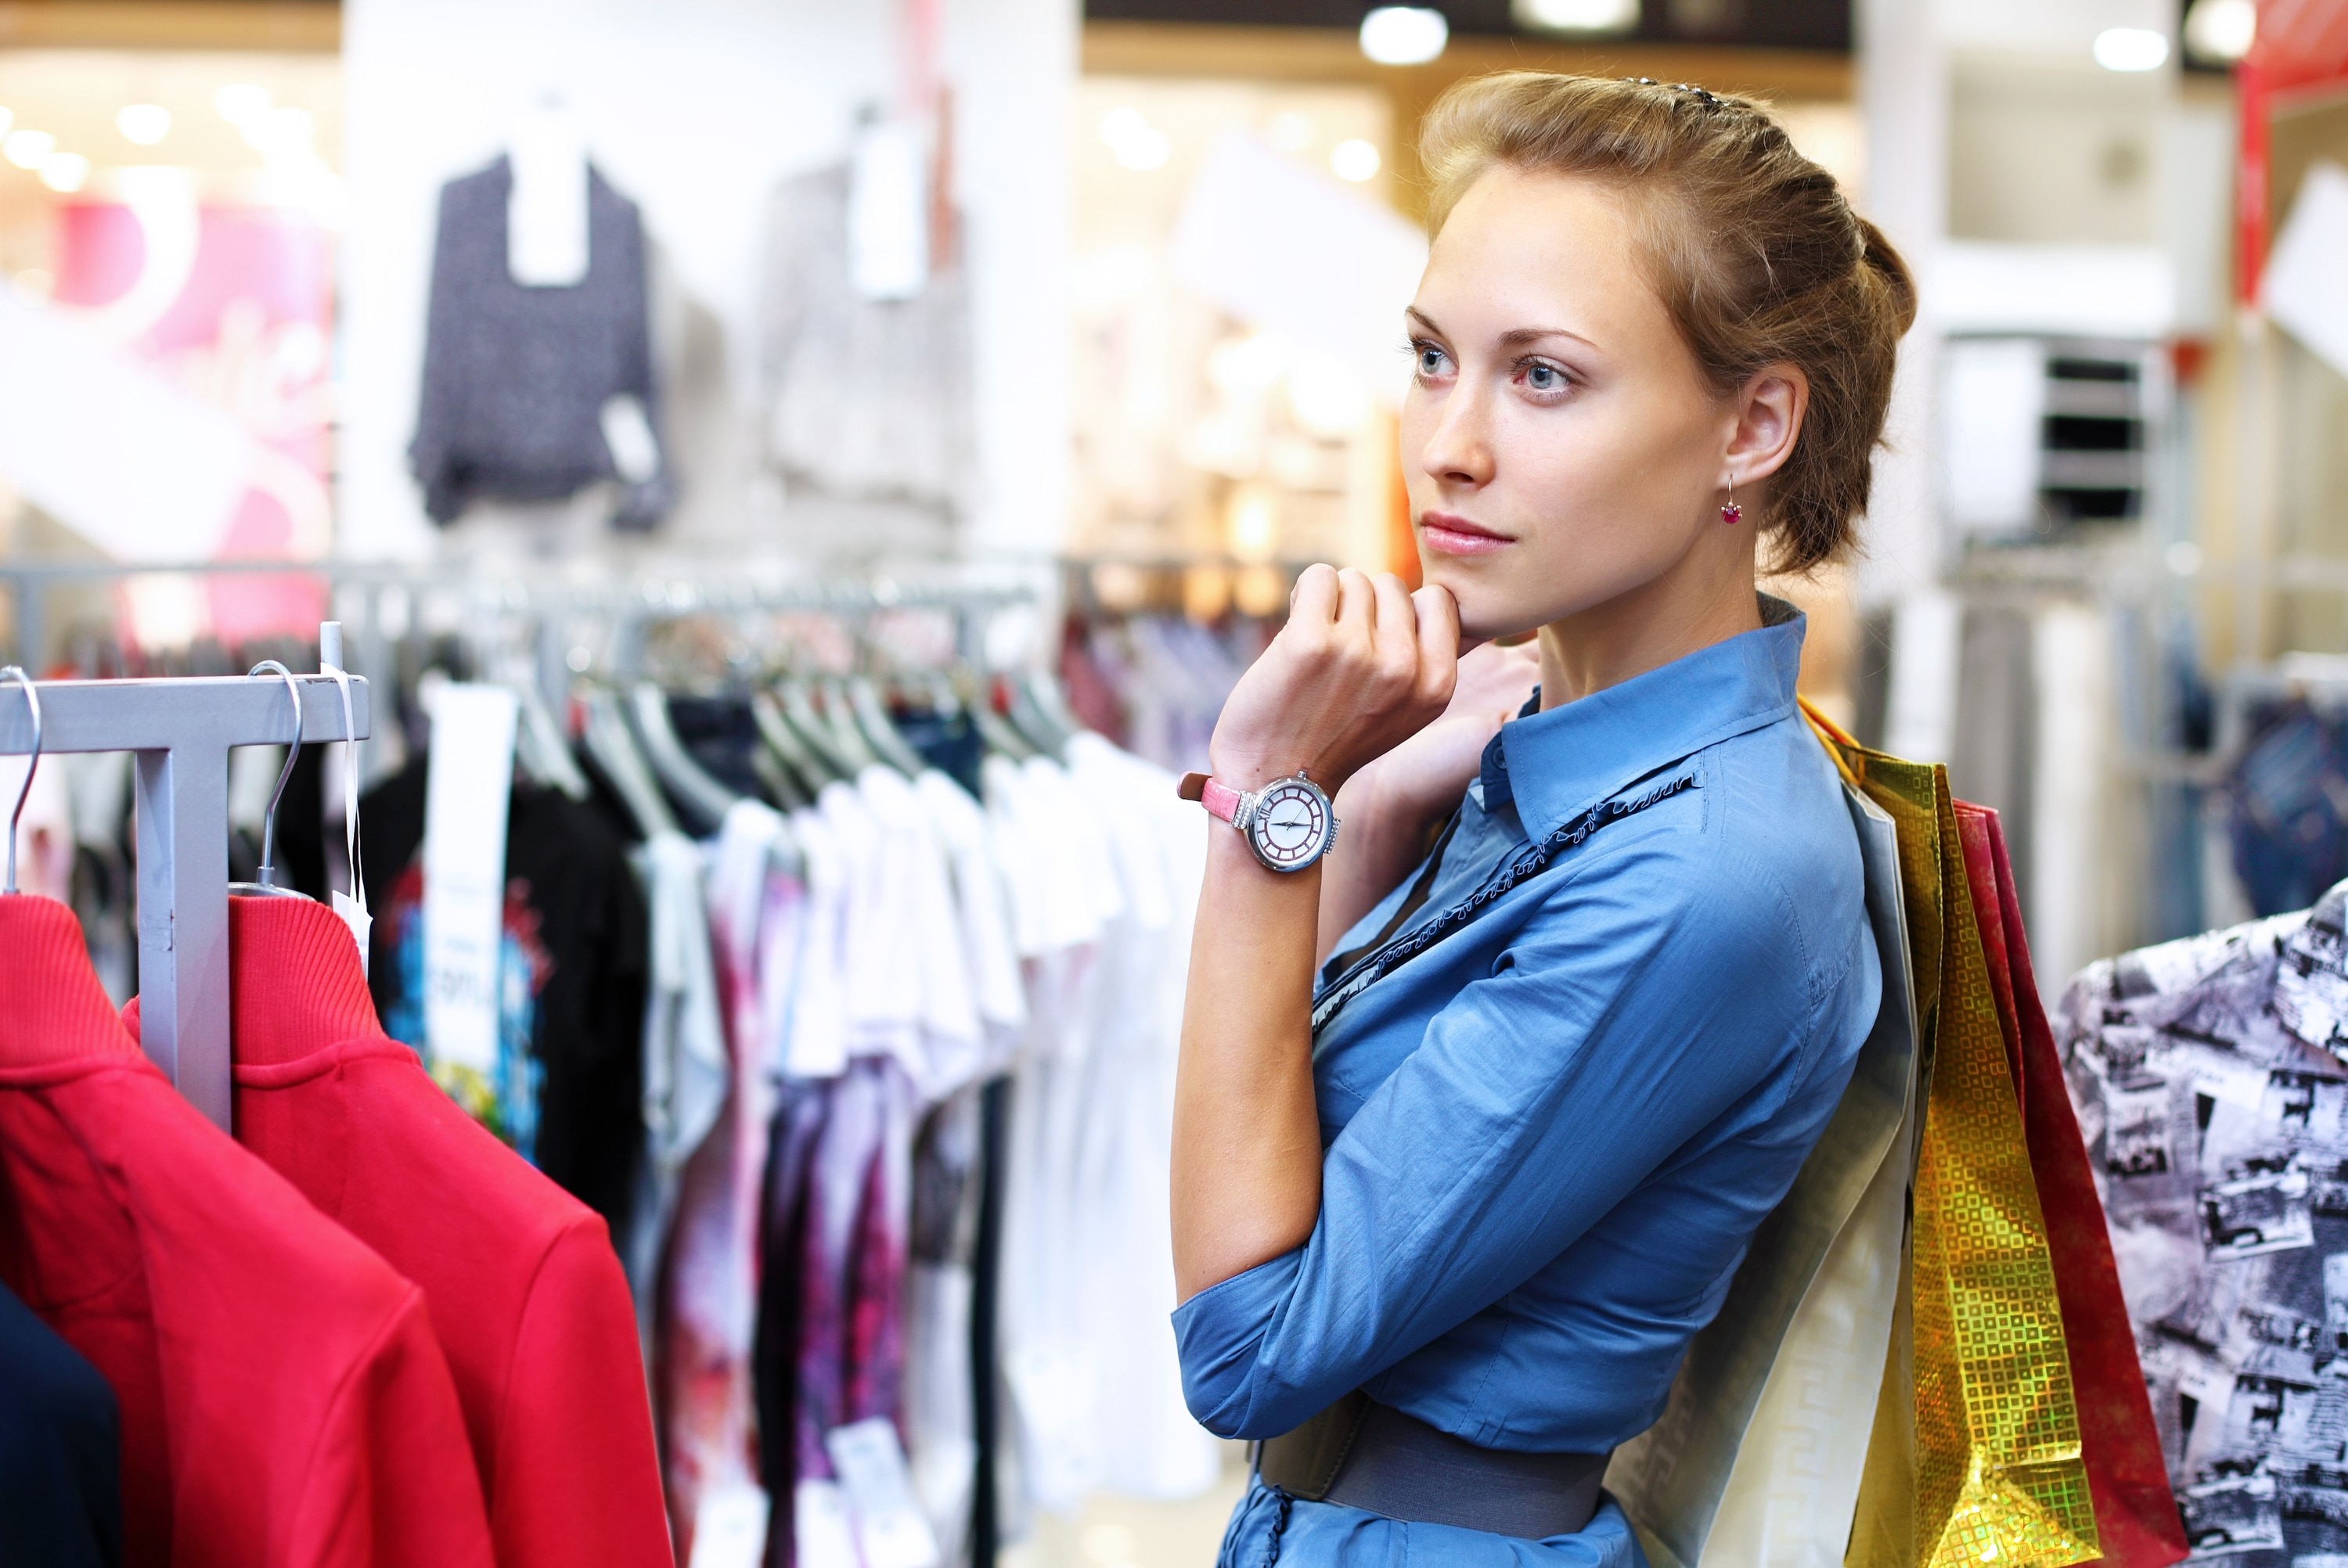 7 Bad Clothes Shopping Habits To Break Now